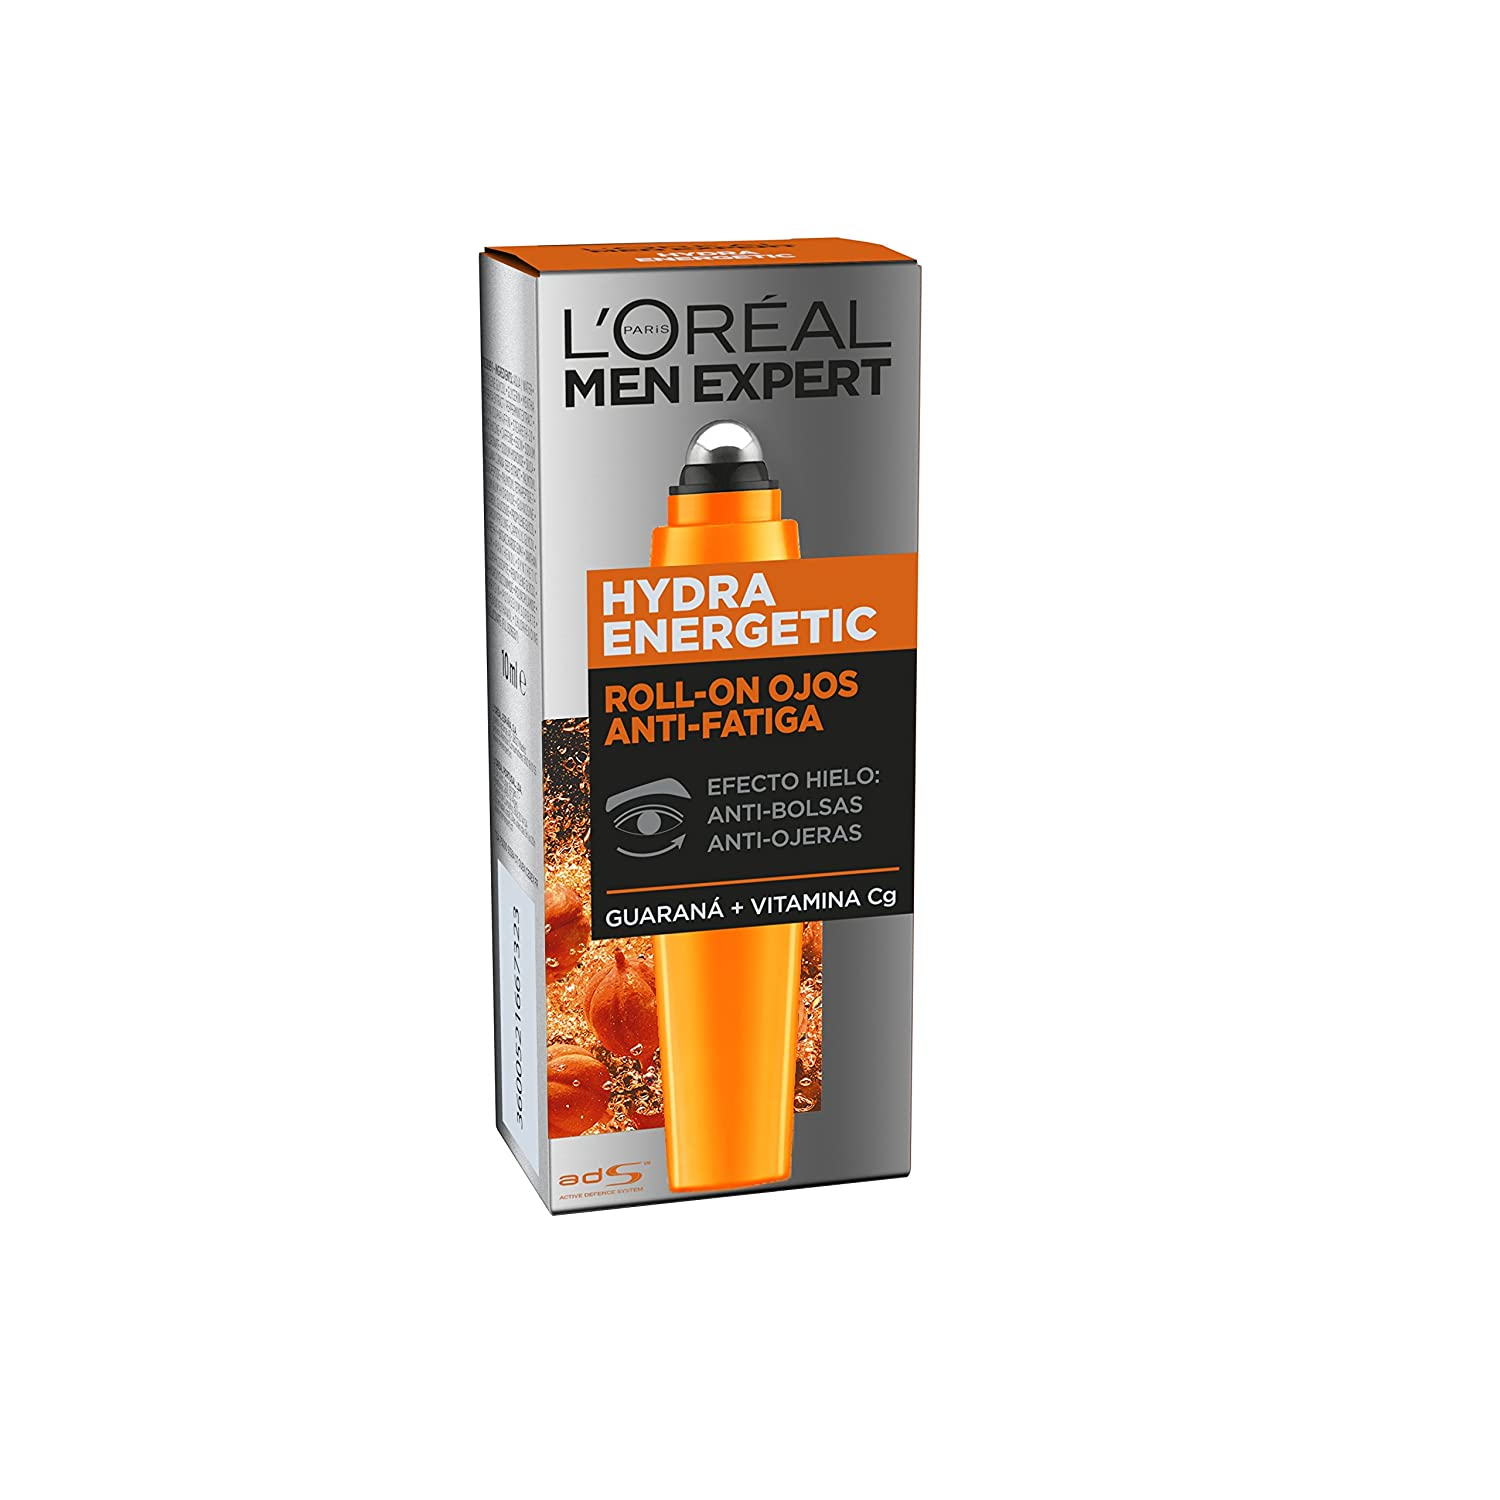 Amazon.com : Loreal Men Expert Hydra Energetic Roll On Anti Cernes - 10 ml : Beauty